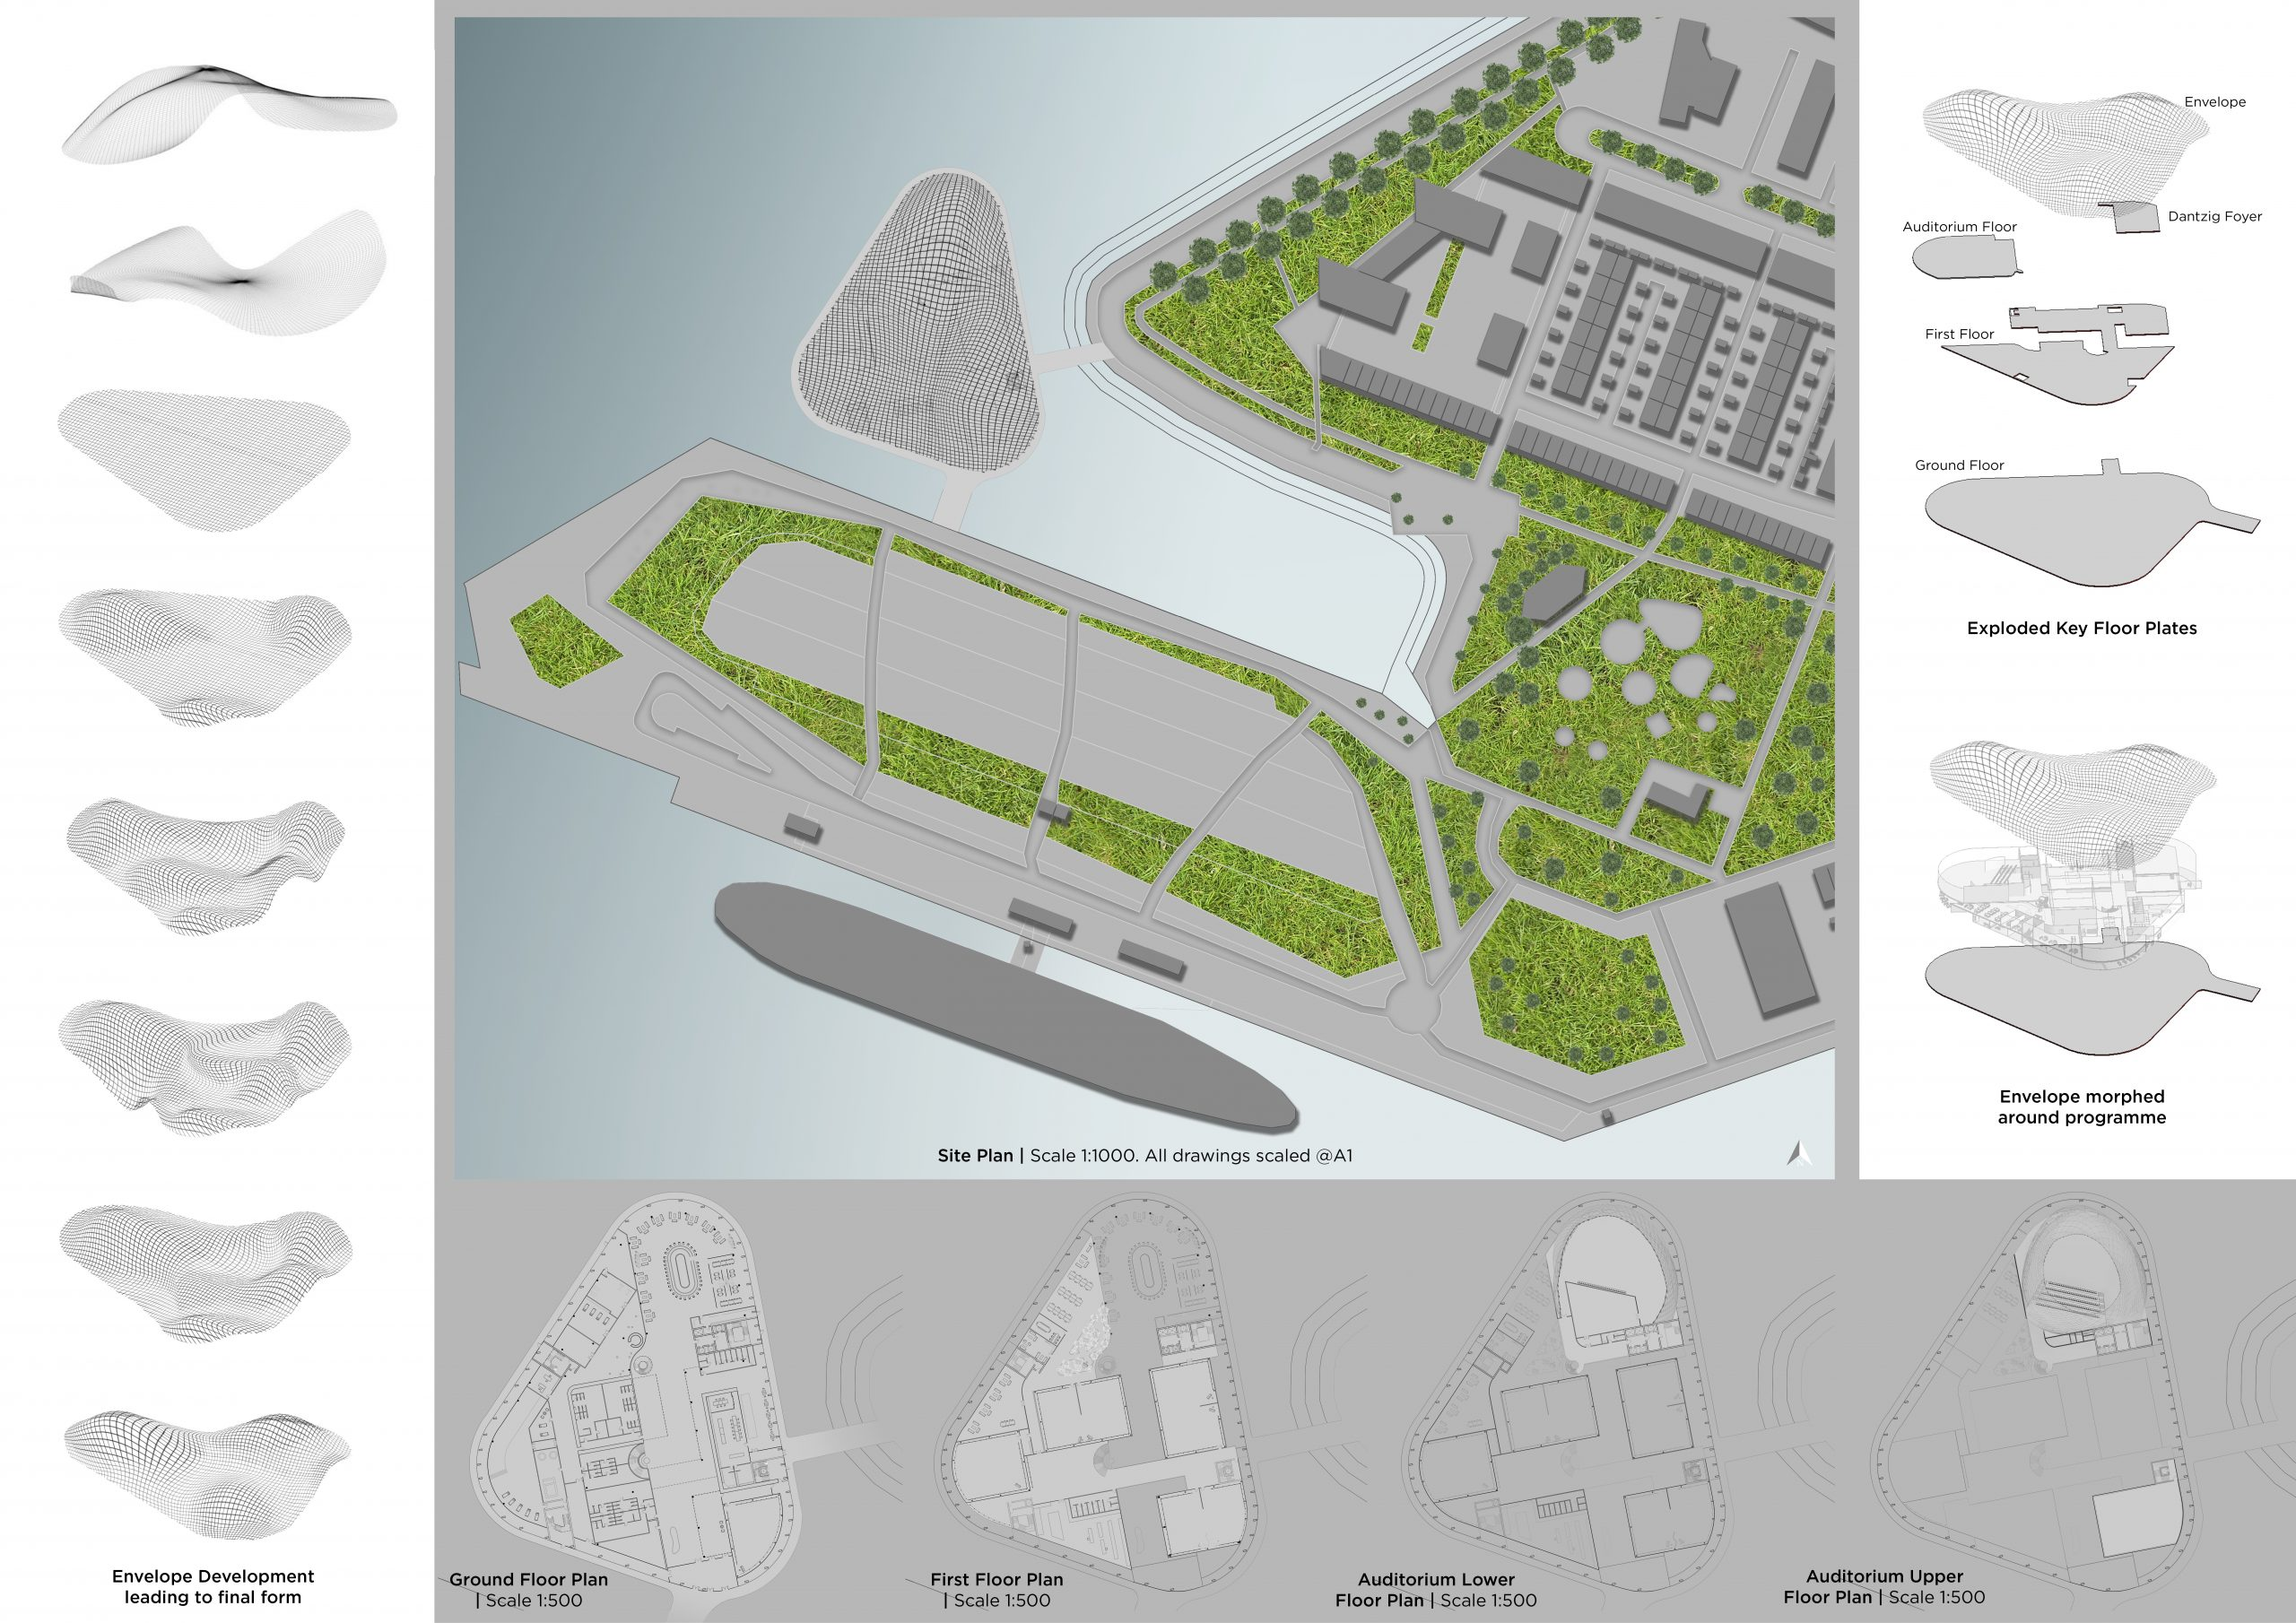 Site Plan   Scale 1:1000 @A1 Image